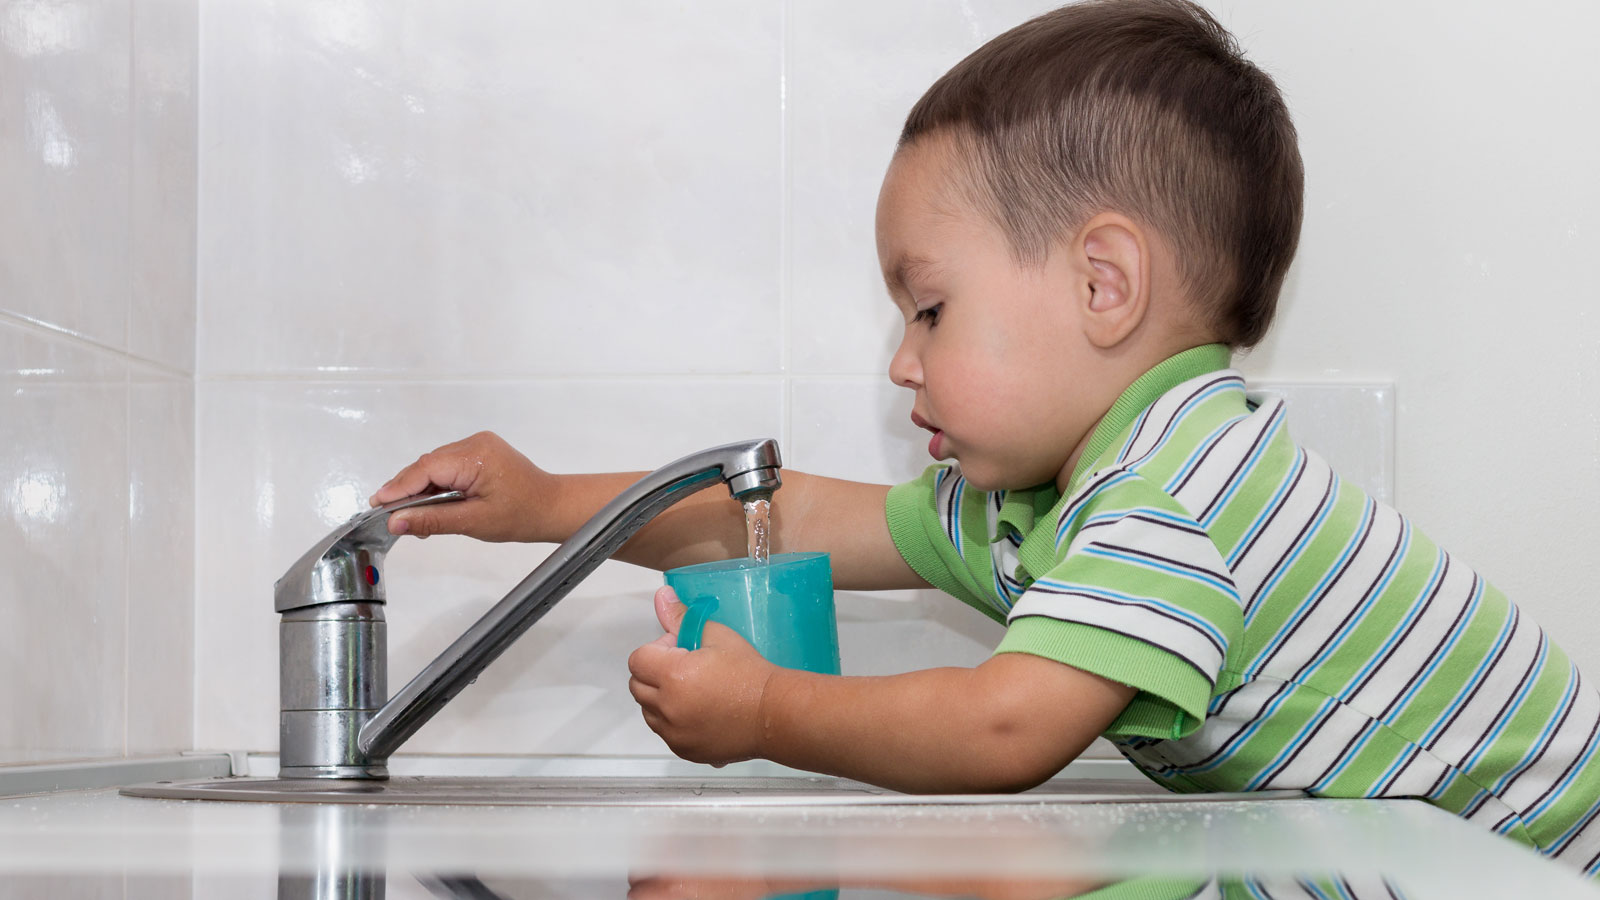 <h4>NO TOXICS ON TAP</h4><h5>Goal: Protect our drinking water from toxic PFAS contamination.</h5>